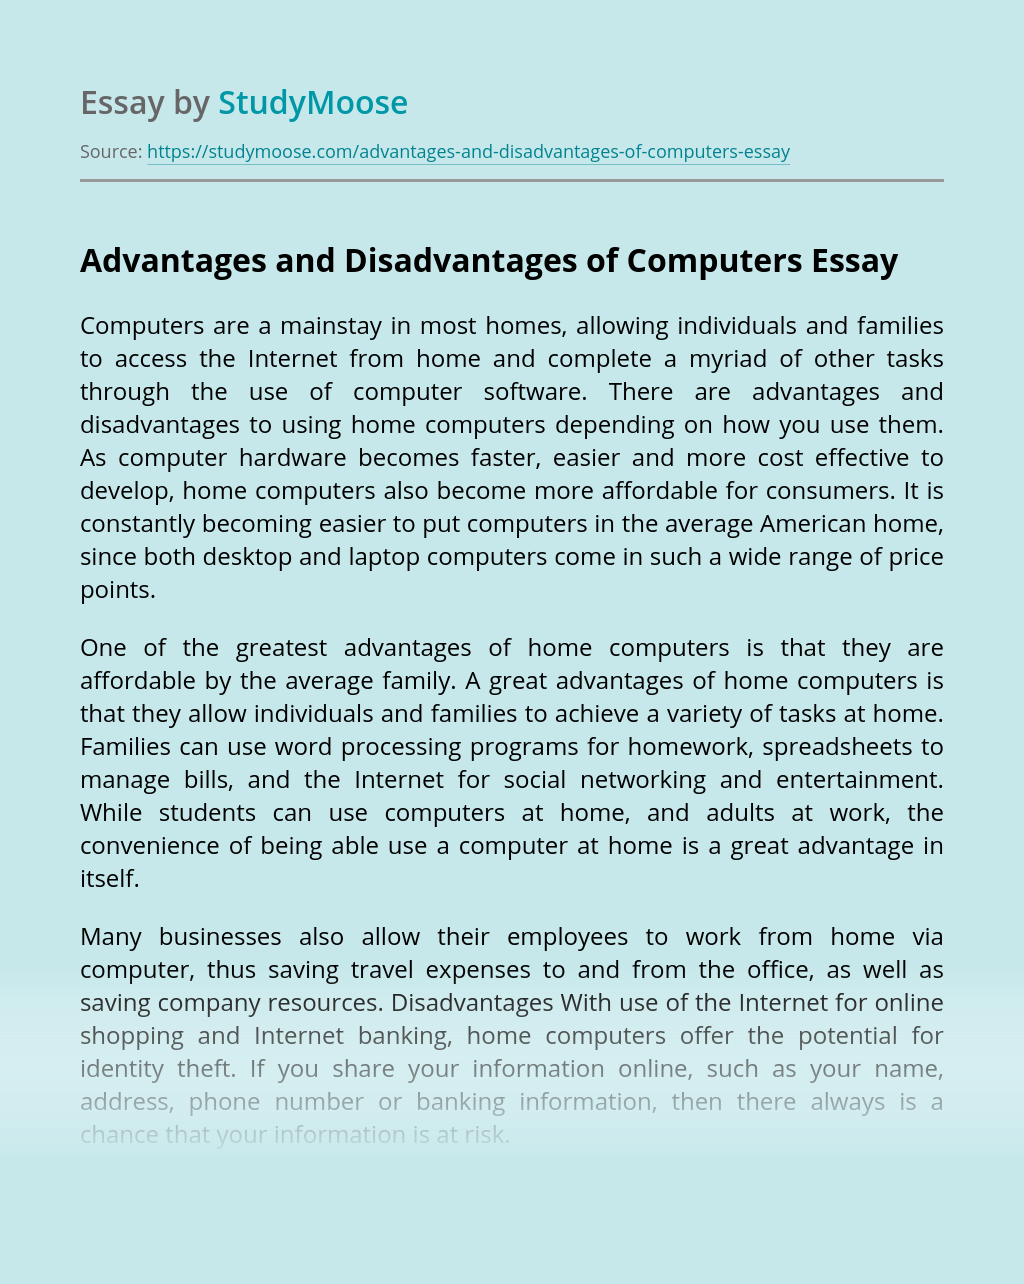 Advantages and Disadvantages of Computers